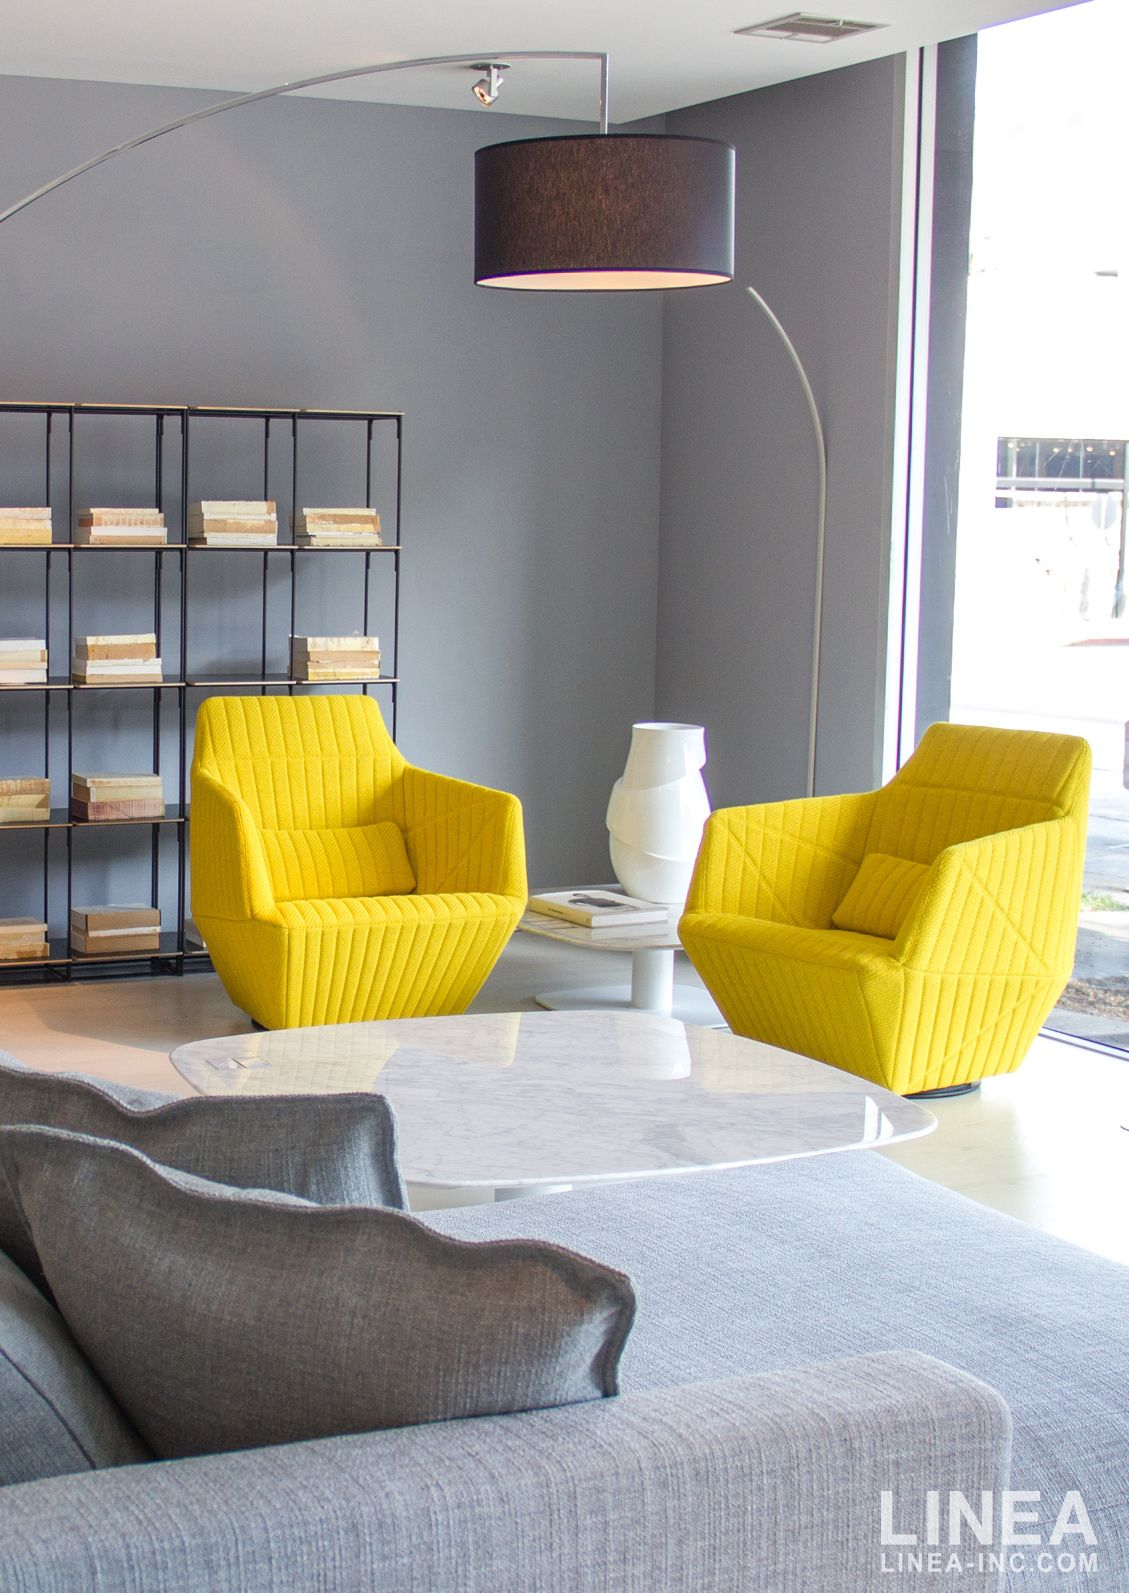 Facett Armchairs In Coda Yellow Fabric Designed For Ligneroset Linea Inc 8841 Beverly Blvd Los Angeles Ca 90046 Info